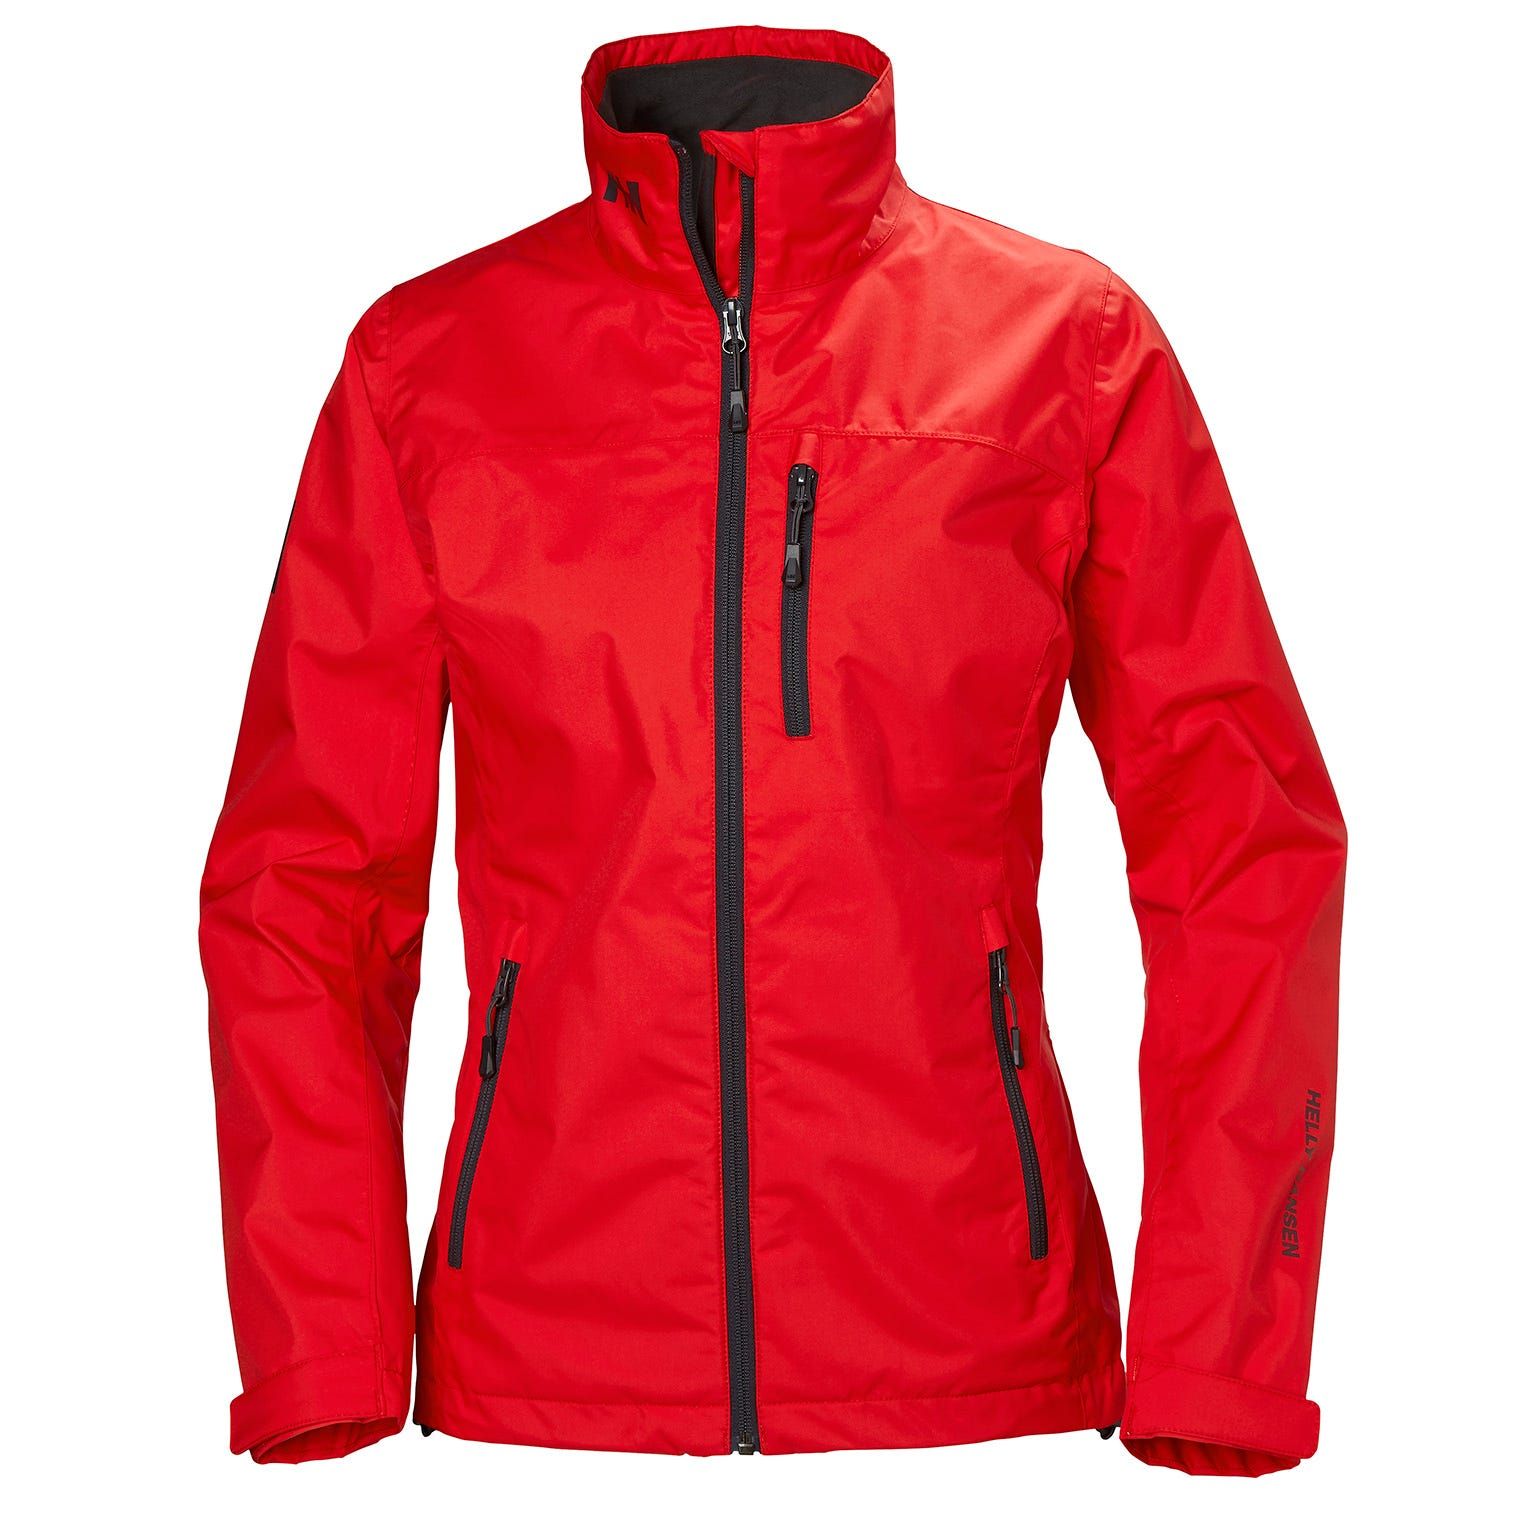 Helly Hansen Womens Sailing Jacket Red L